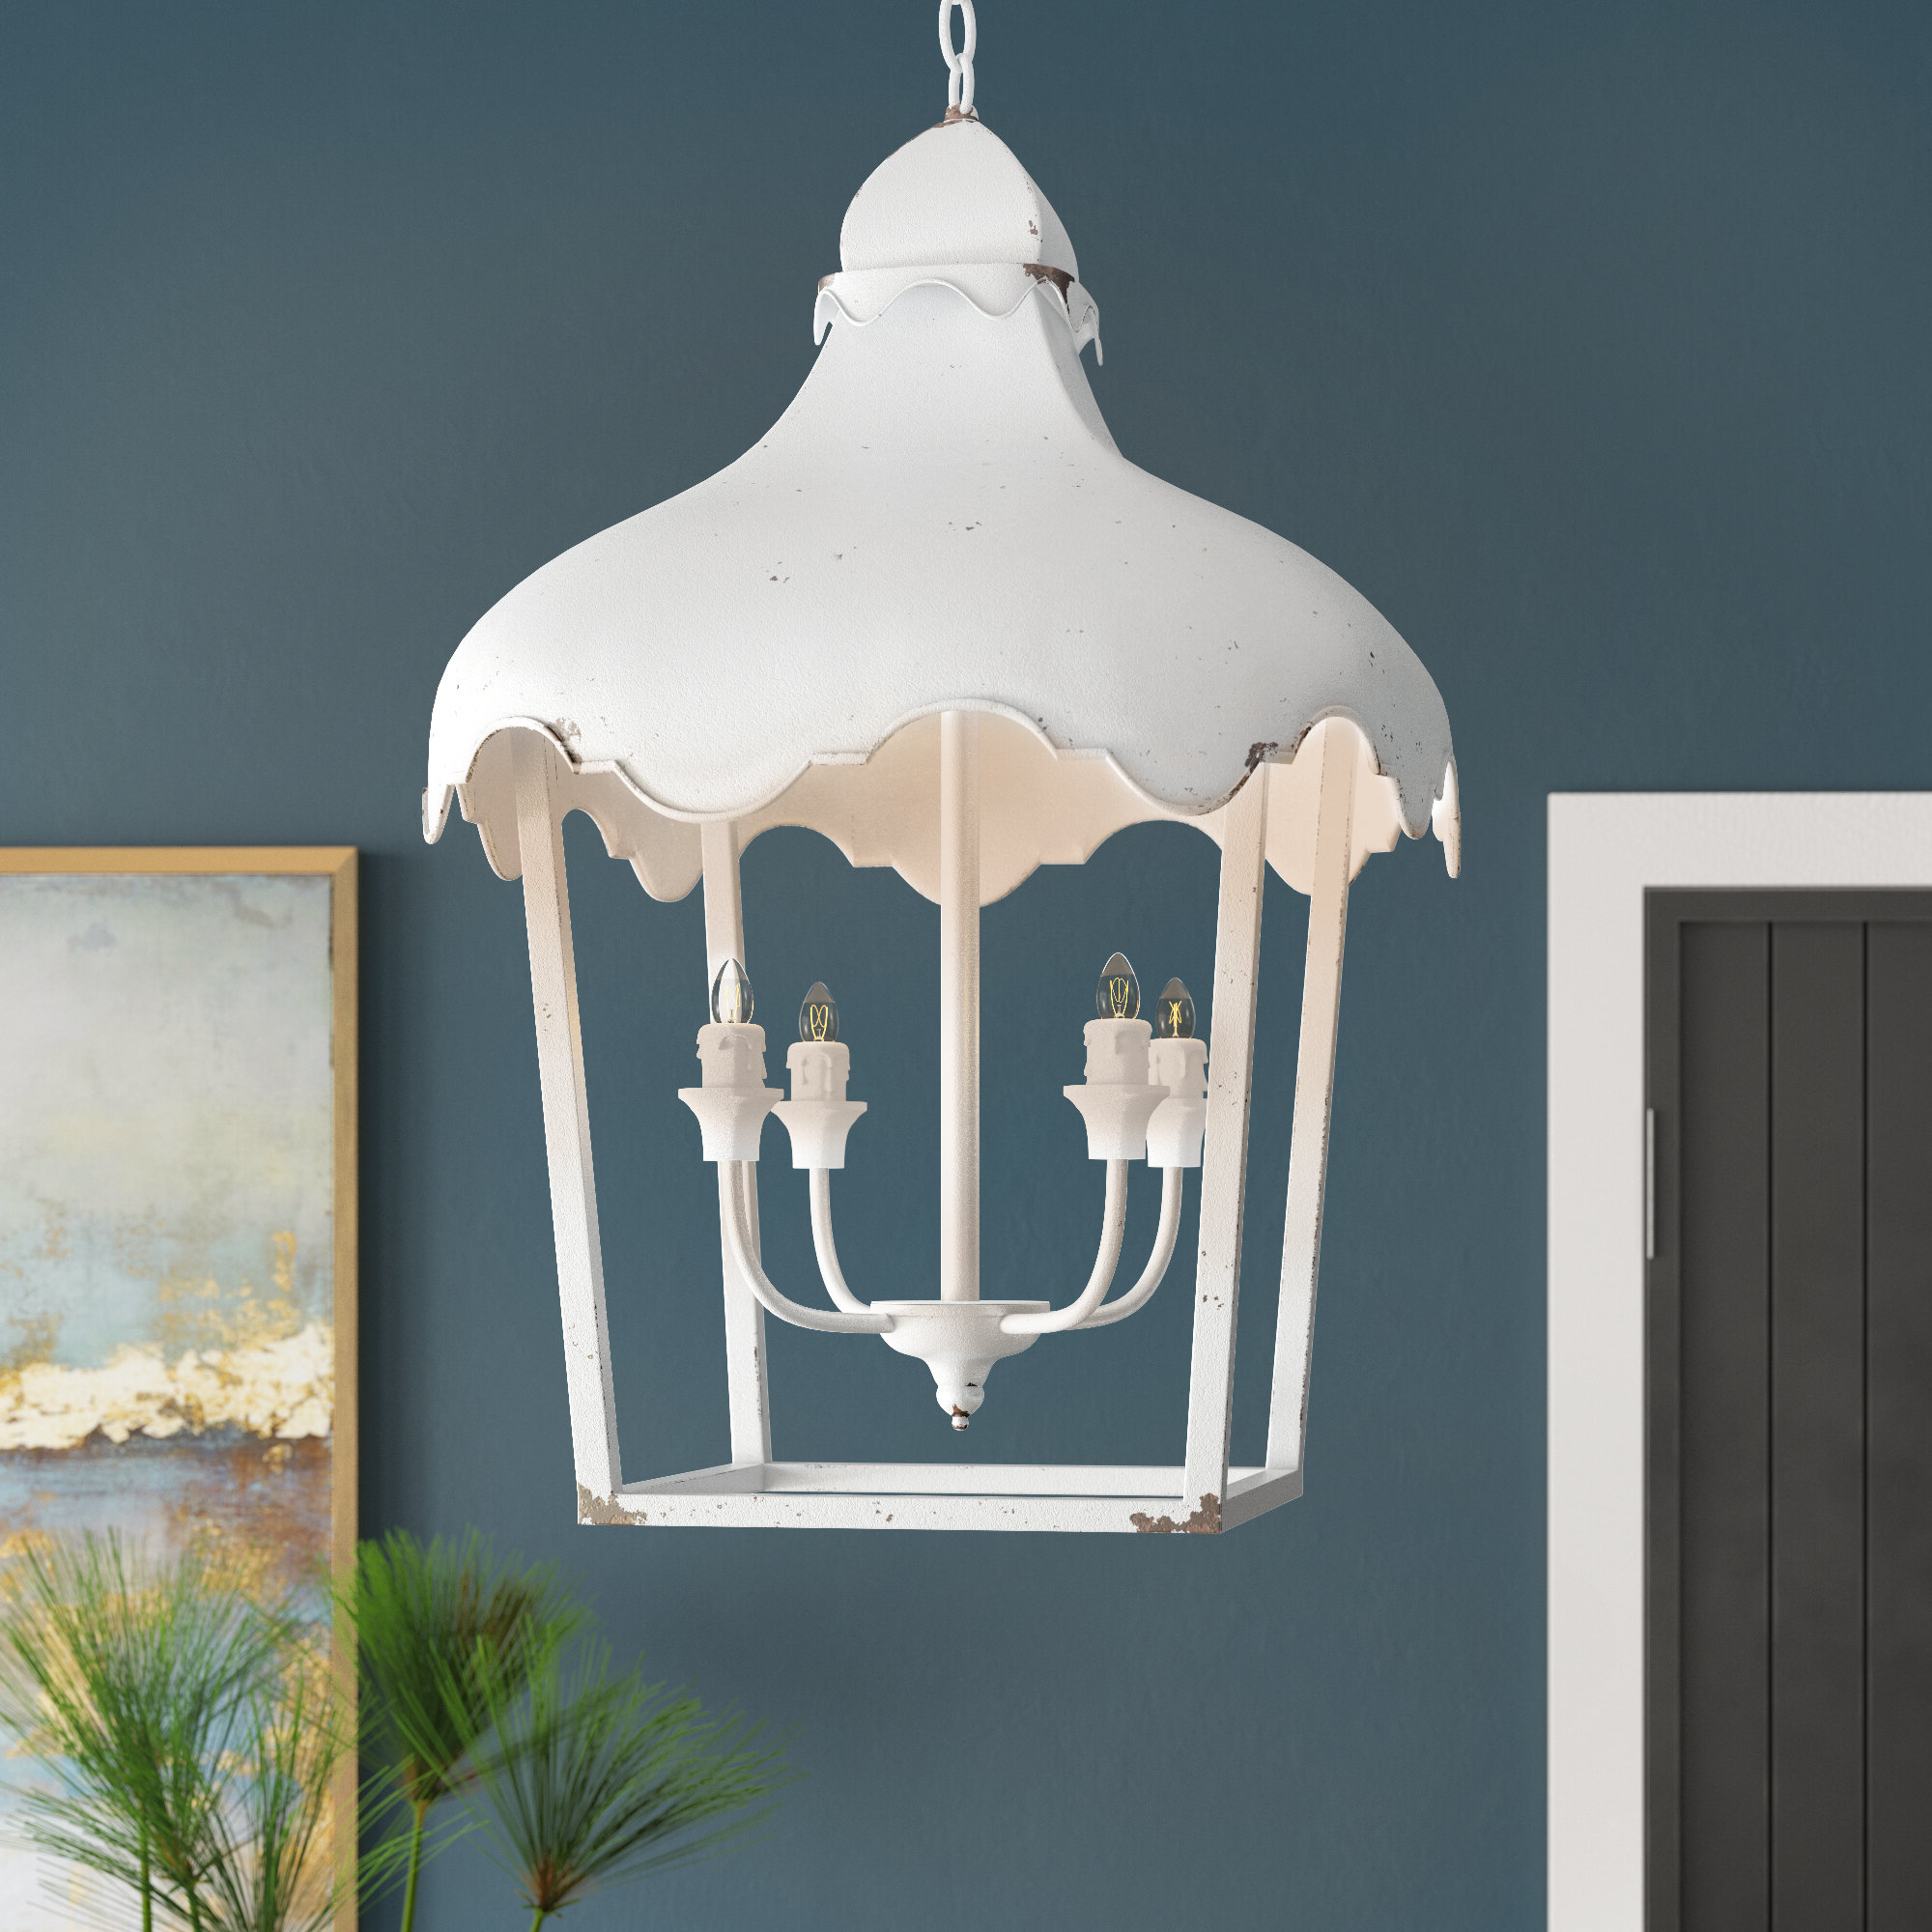 Lussan 4 Light Lantern Geometric Pendant Within Favorite Isoline 2 Light Lantern Geometric Pendants (View 11 of 25)